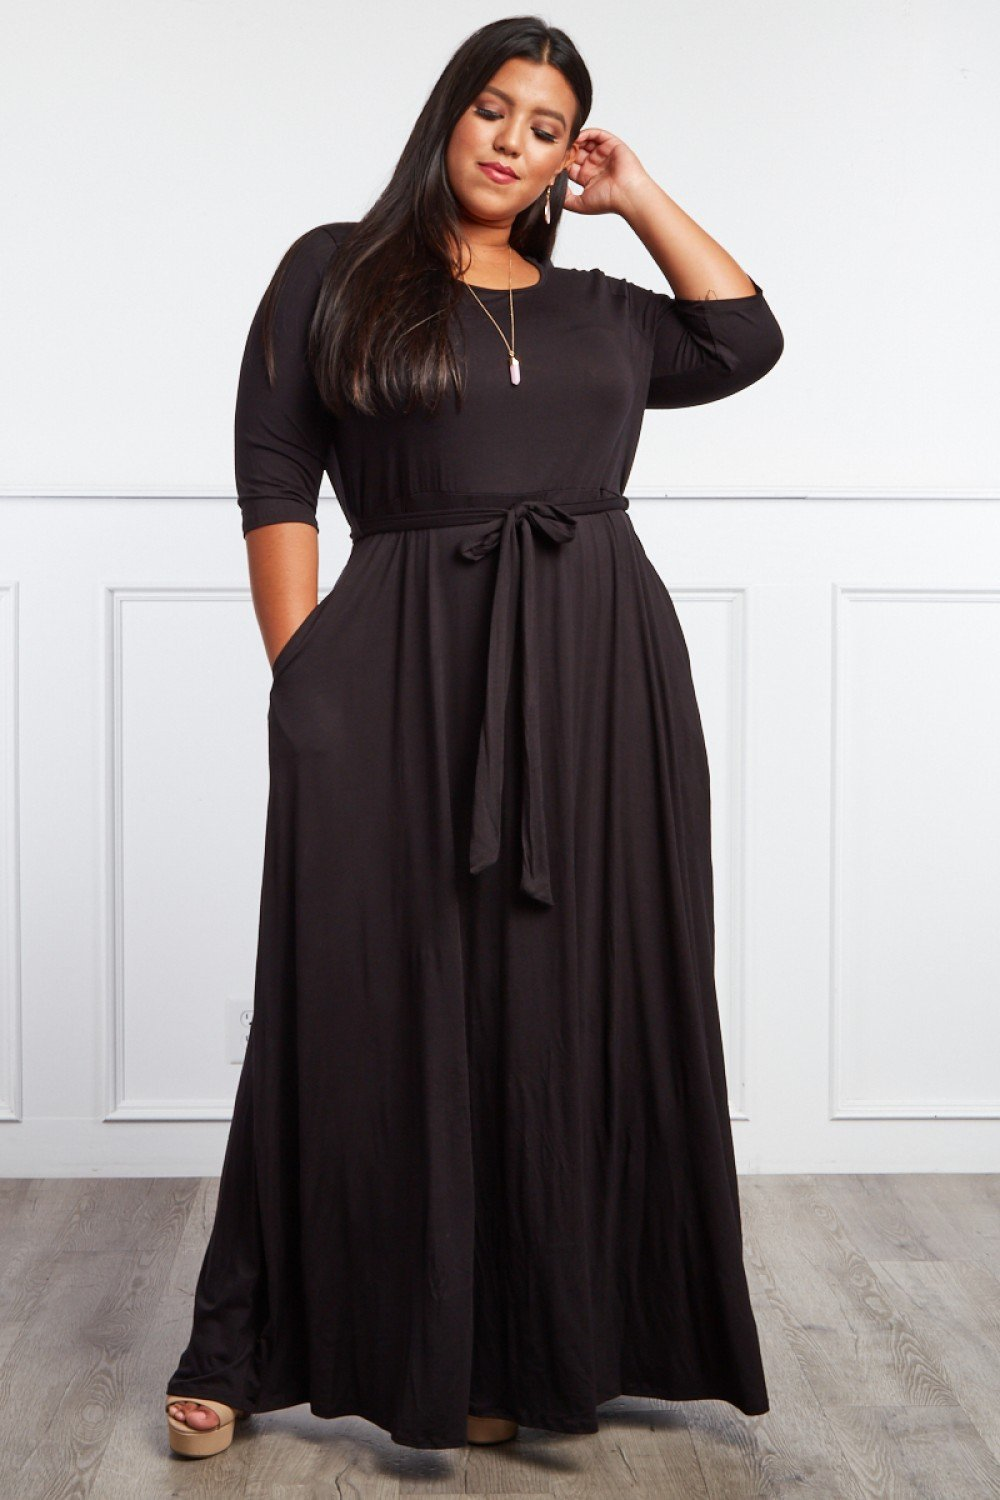 Plus Size Clubwear, Plus Size Clothing, Club Wear, Dresses, Tops ...